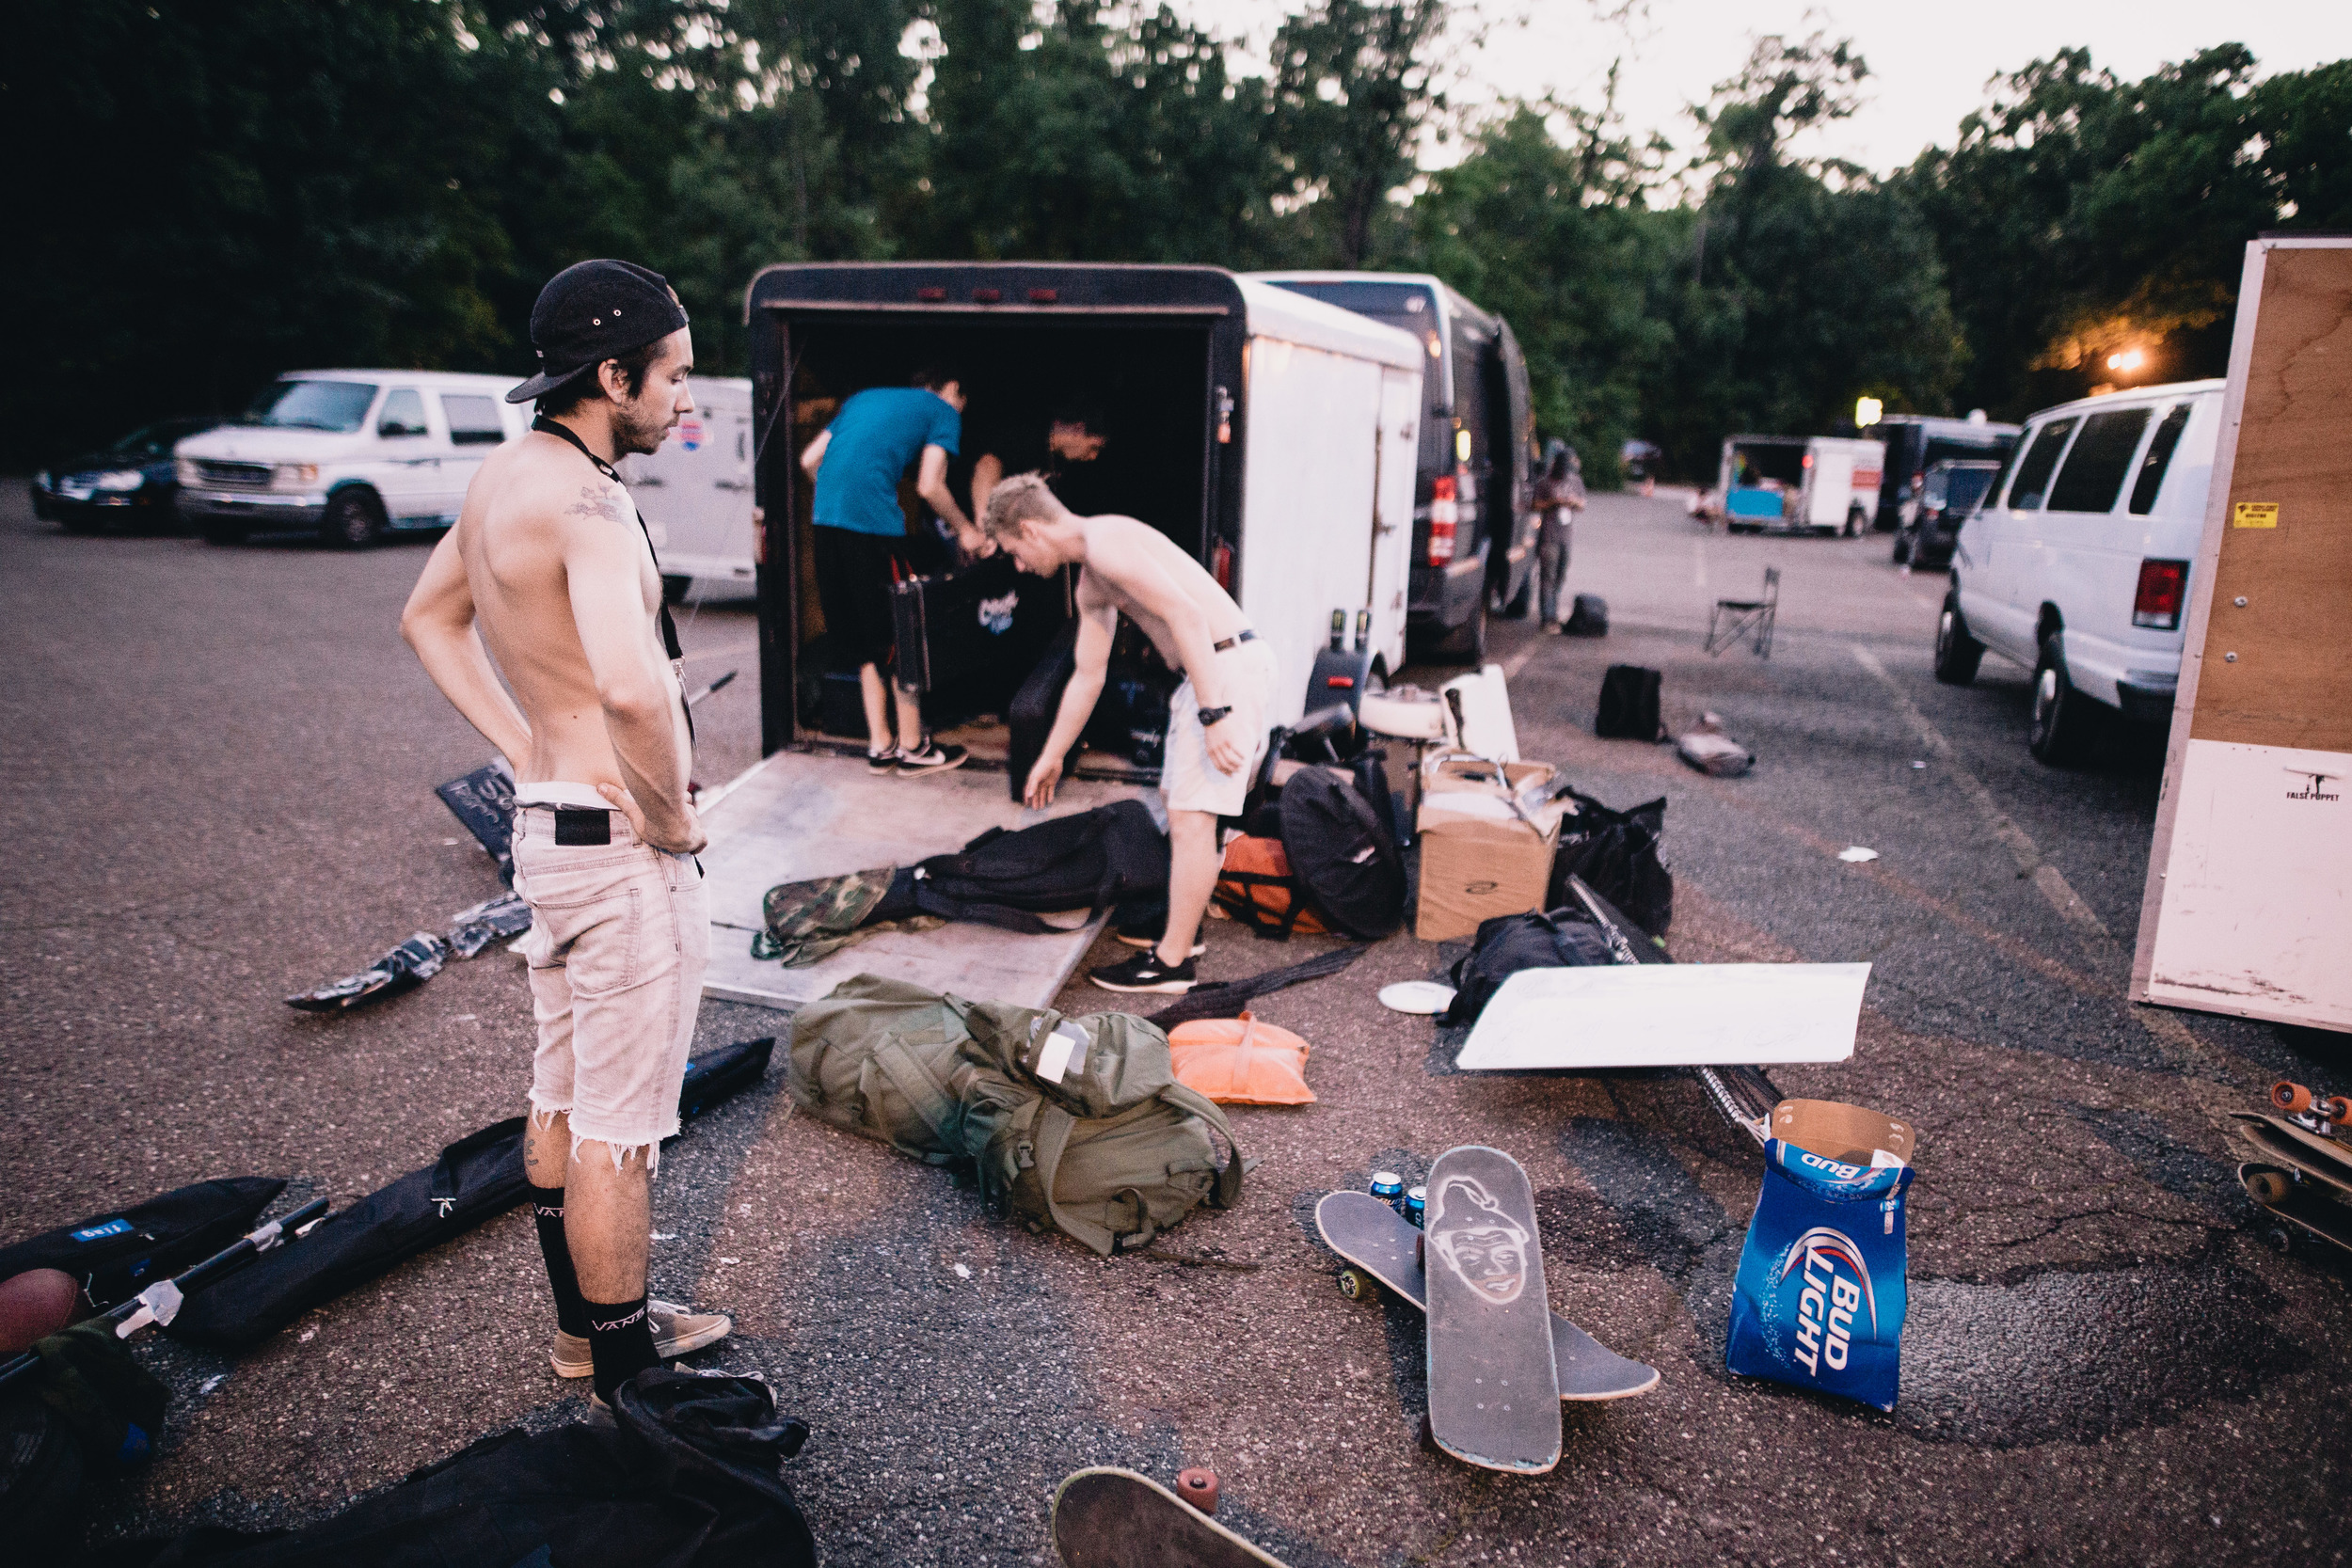 Typical scene outside the van after loading out.